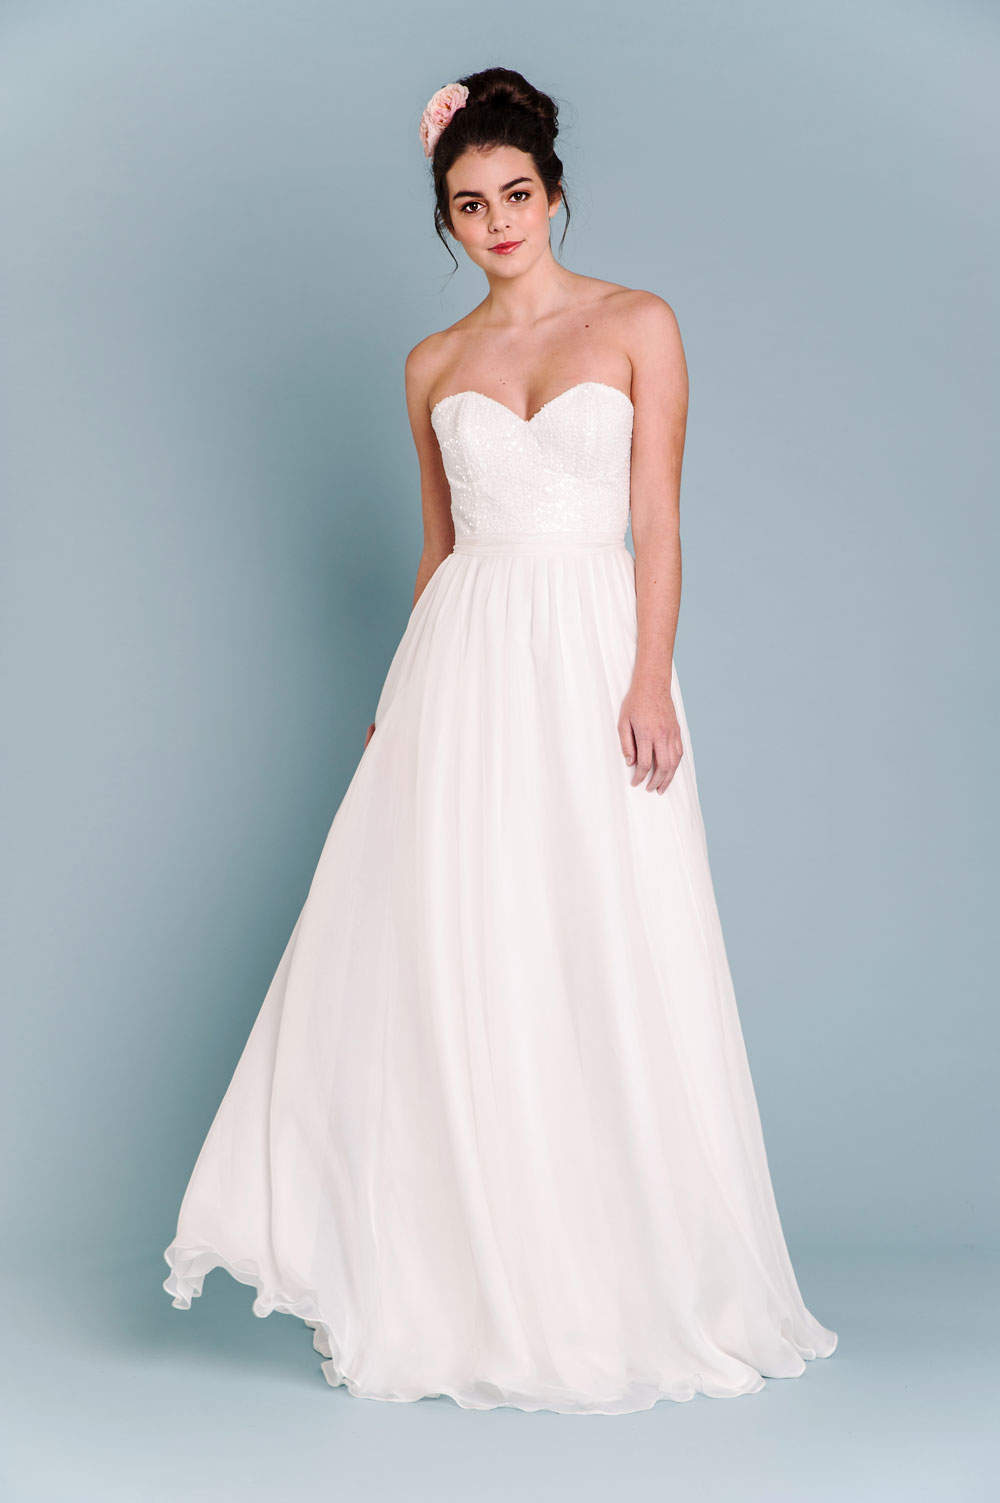 SALLY EAGLE BRIDAL – MOONSTONE